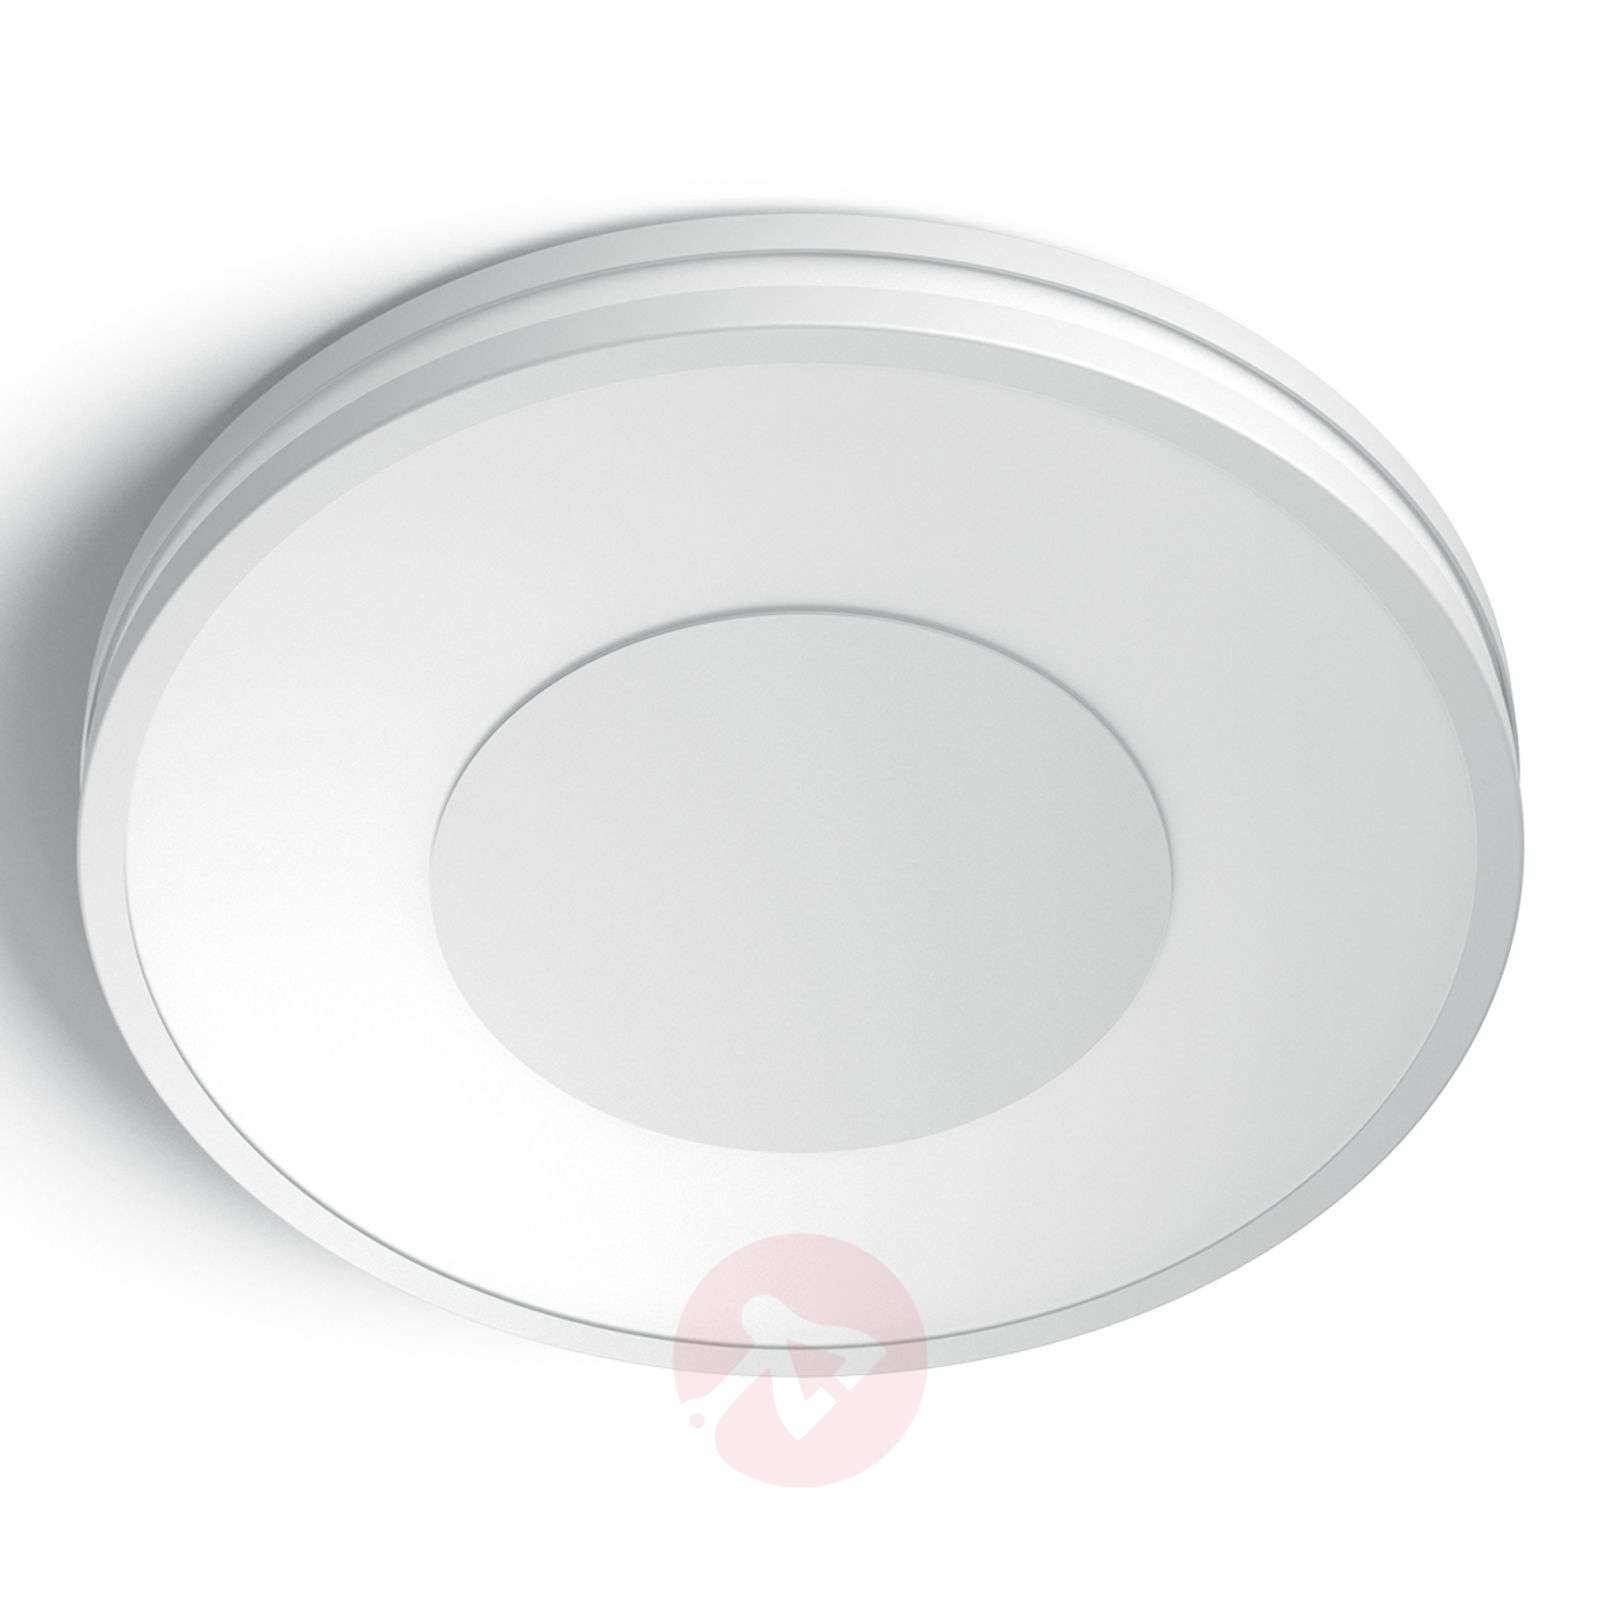 Functional LED ceiling lamp Philips Hue Being-7531866-01